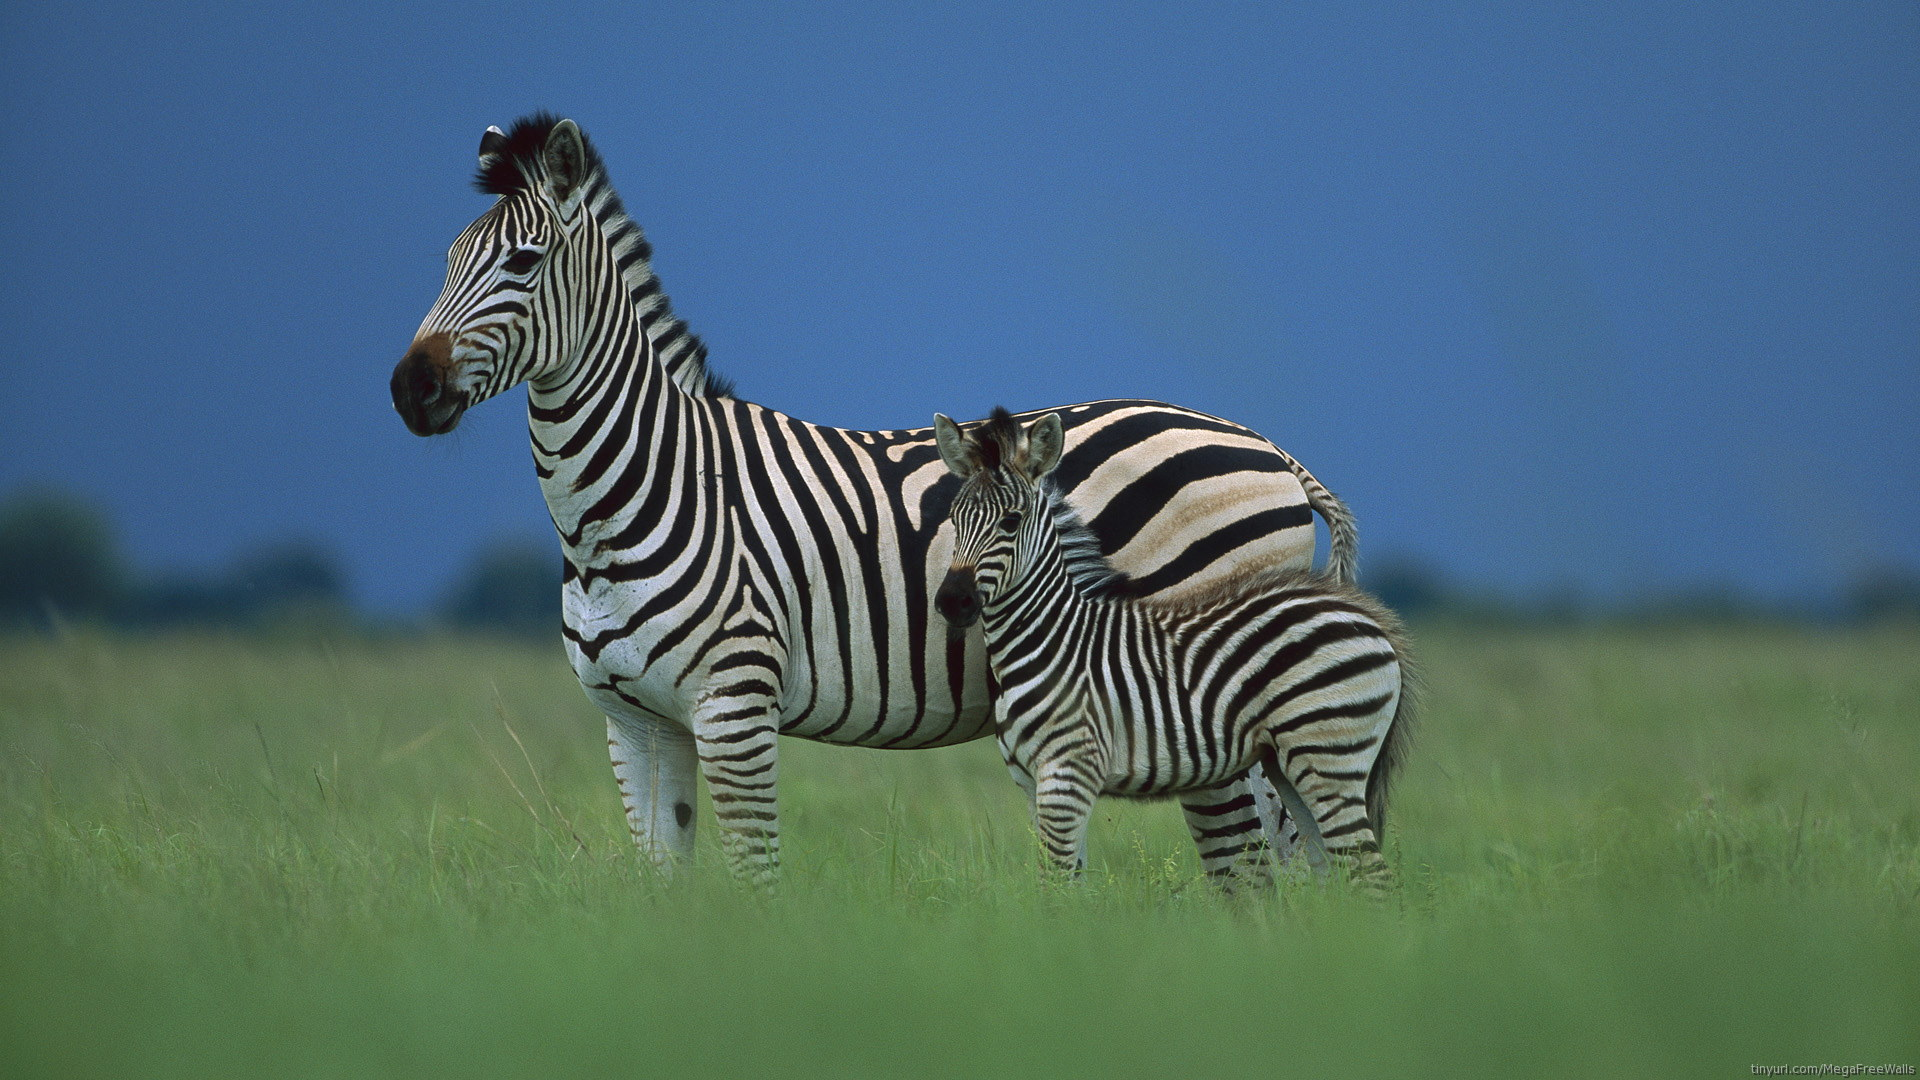 zebra full hd wallpaper and background | 1920x1080 | id:277058